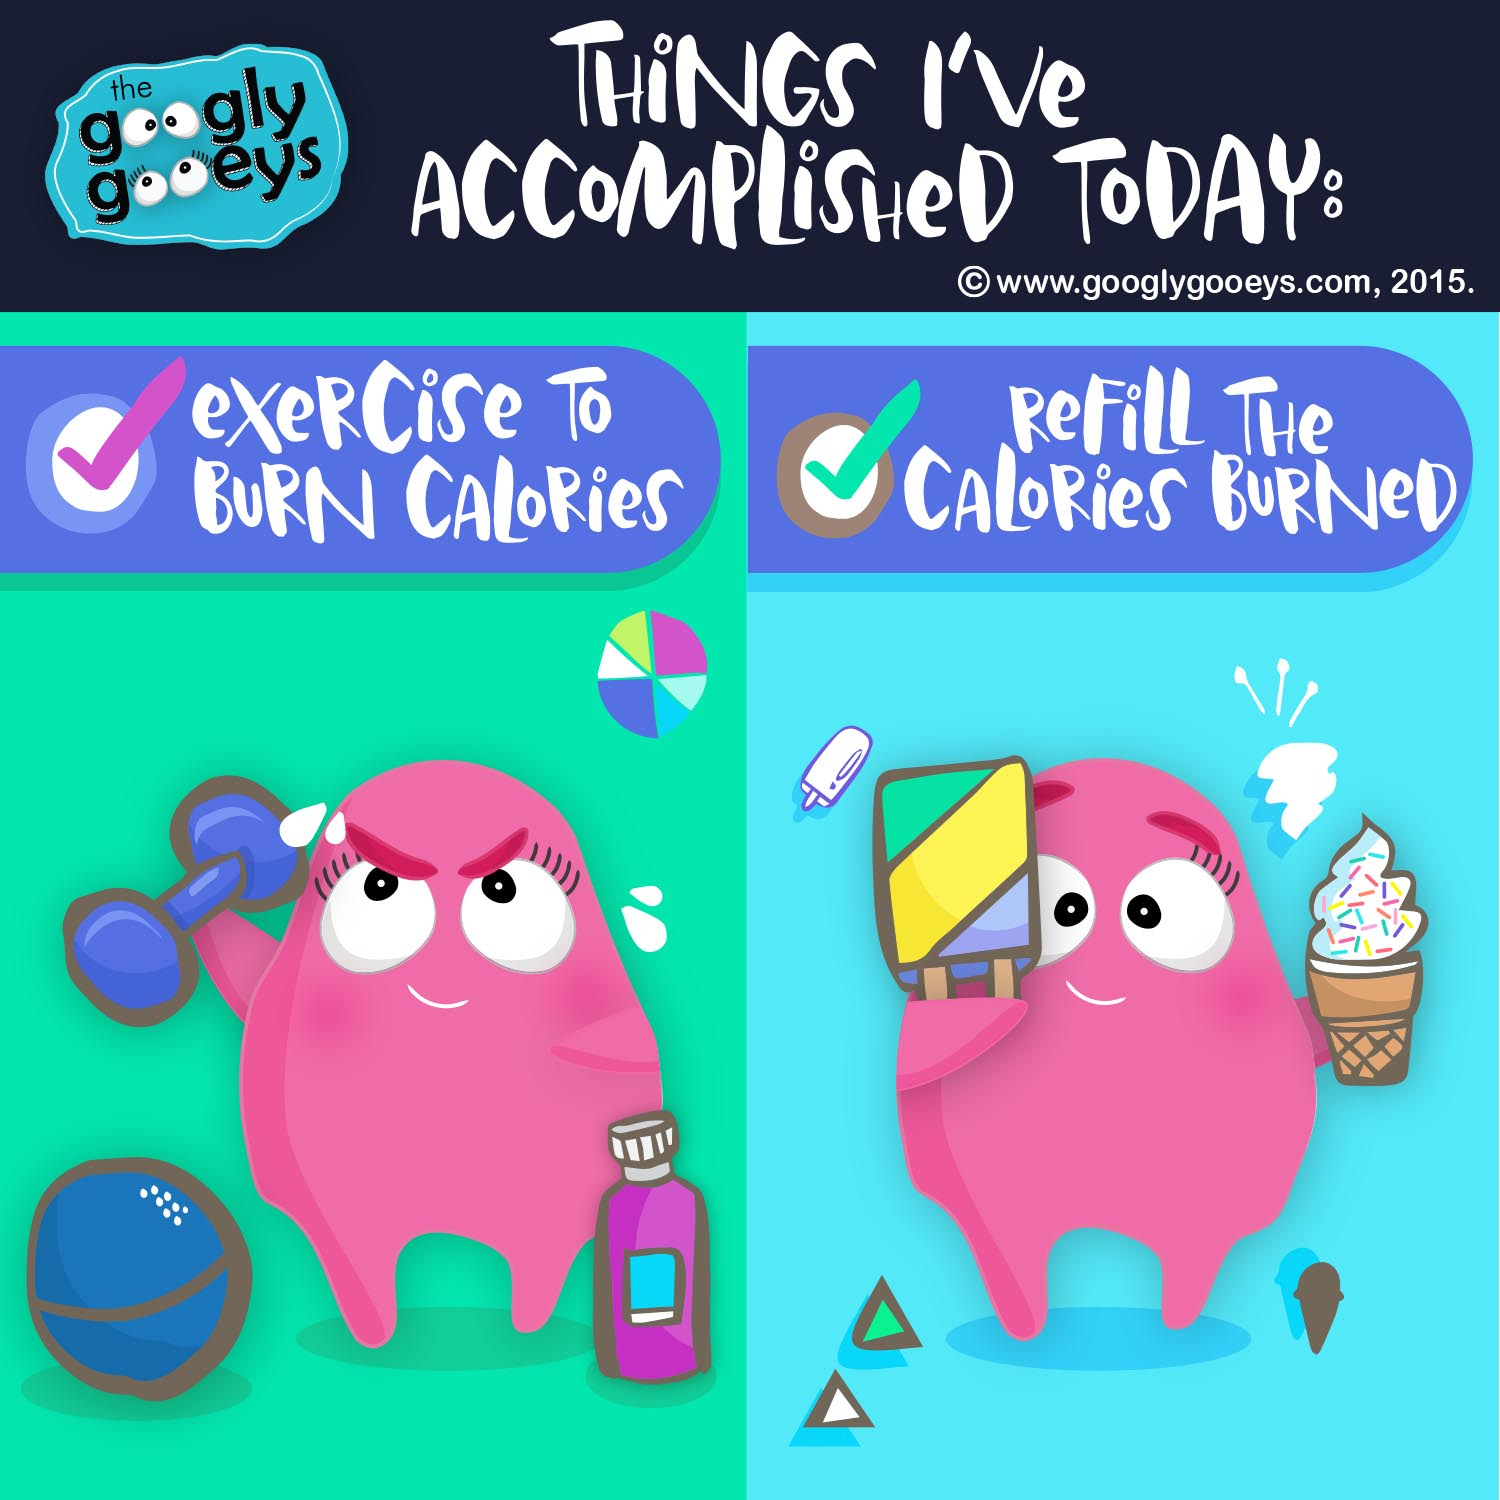 Of Exercise & Refilling the Calories Burned